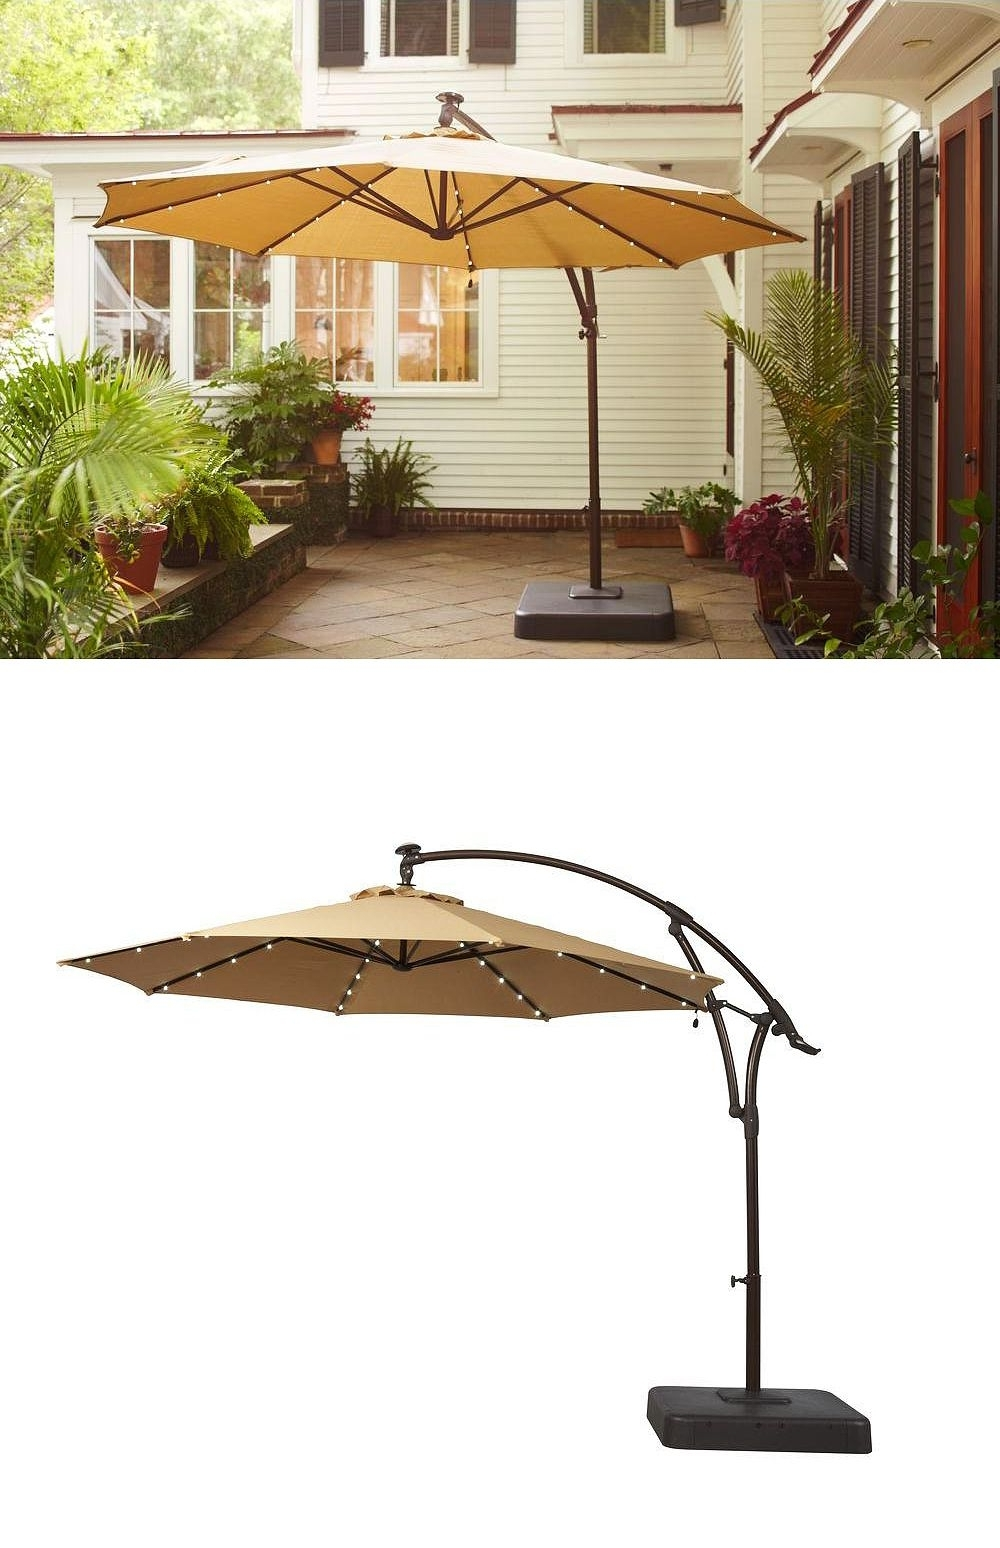 There's Something Special About This Patio Umbrella: It Has Small For 2019 Solar Powered Patio Umbrellas (View 9 of 20)